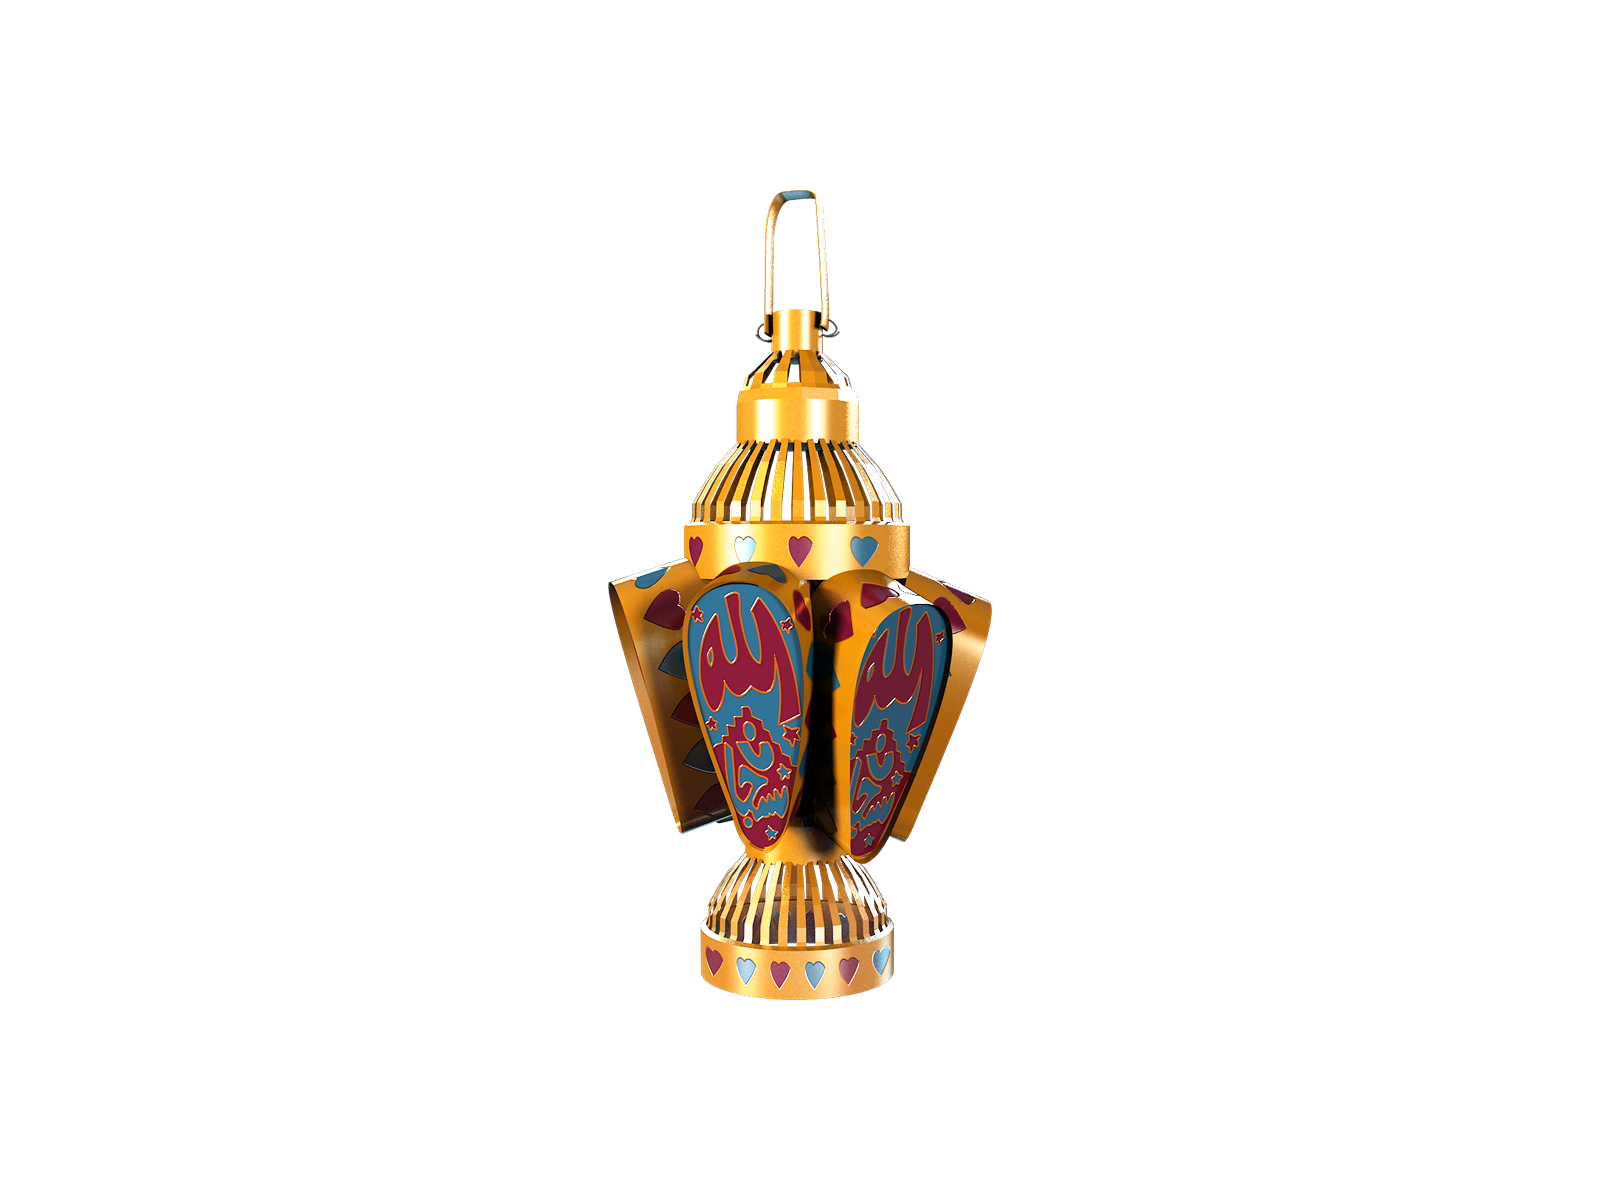 Ramadan Lantern For Design Png 1600x1200, Ramadan HD PNG Download